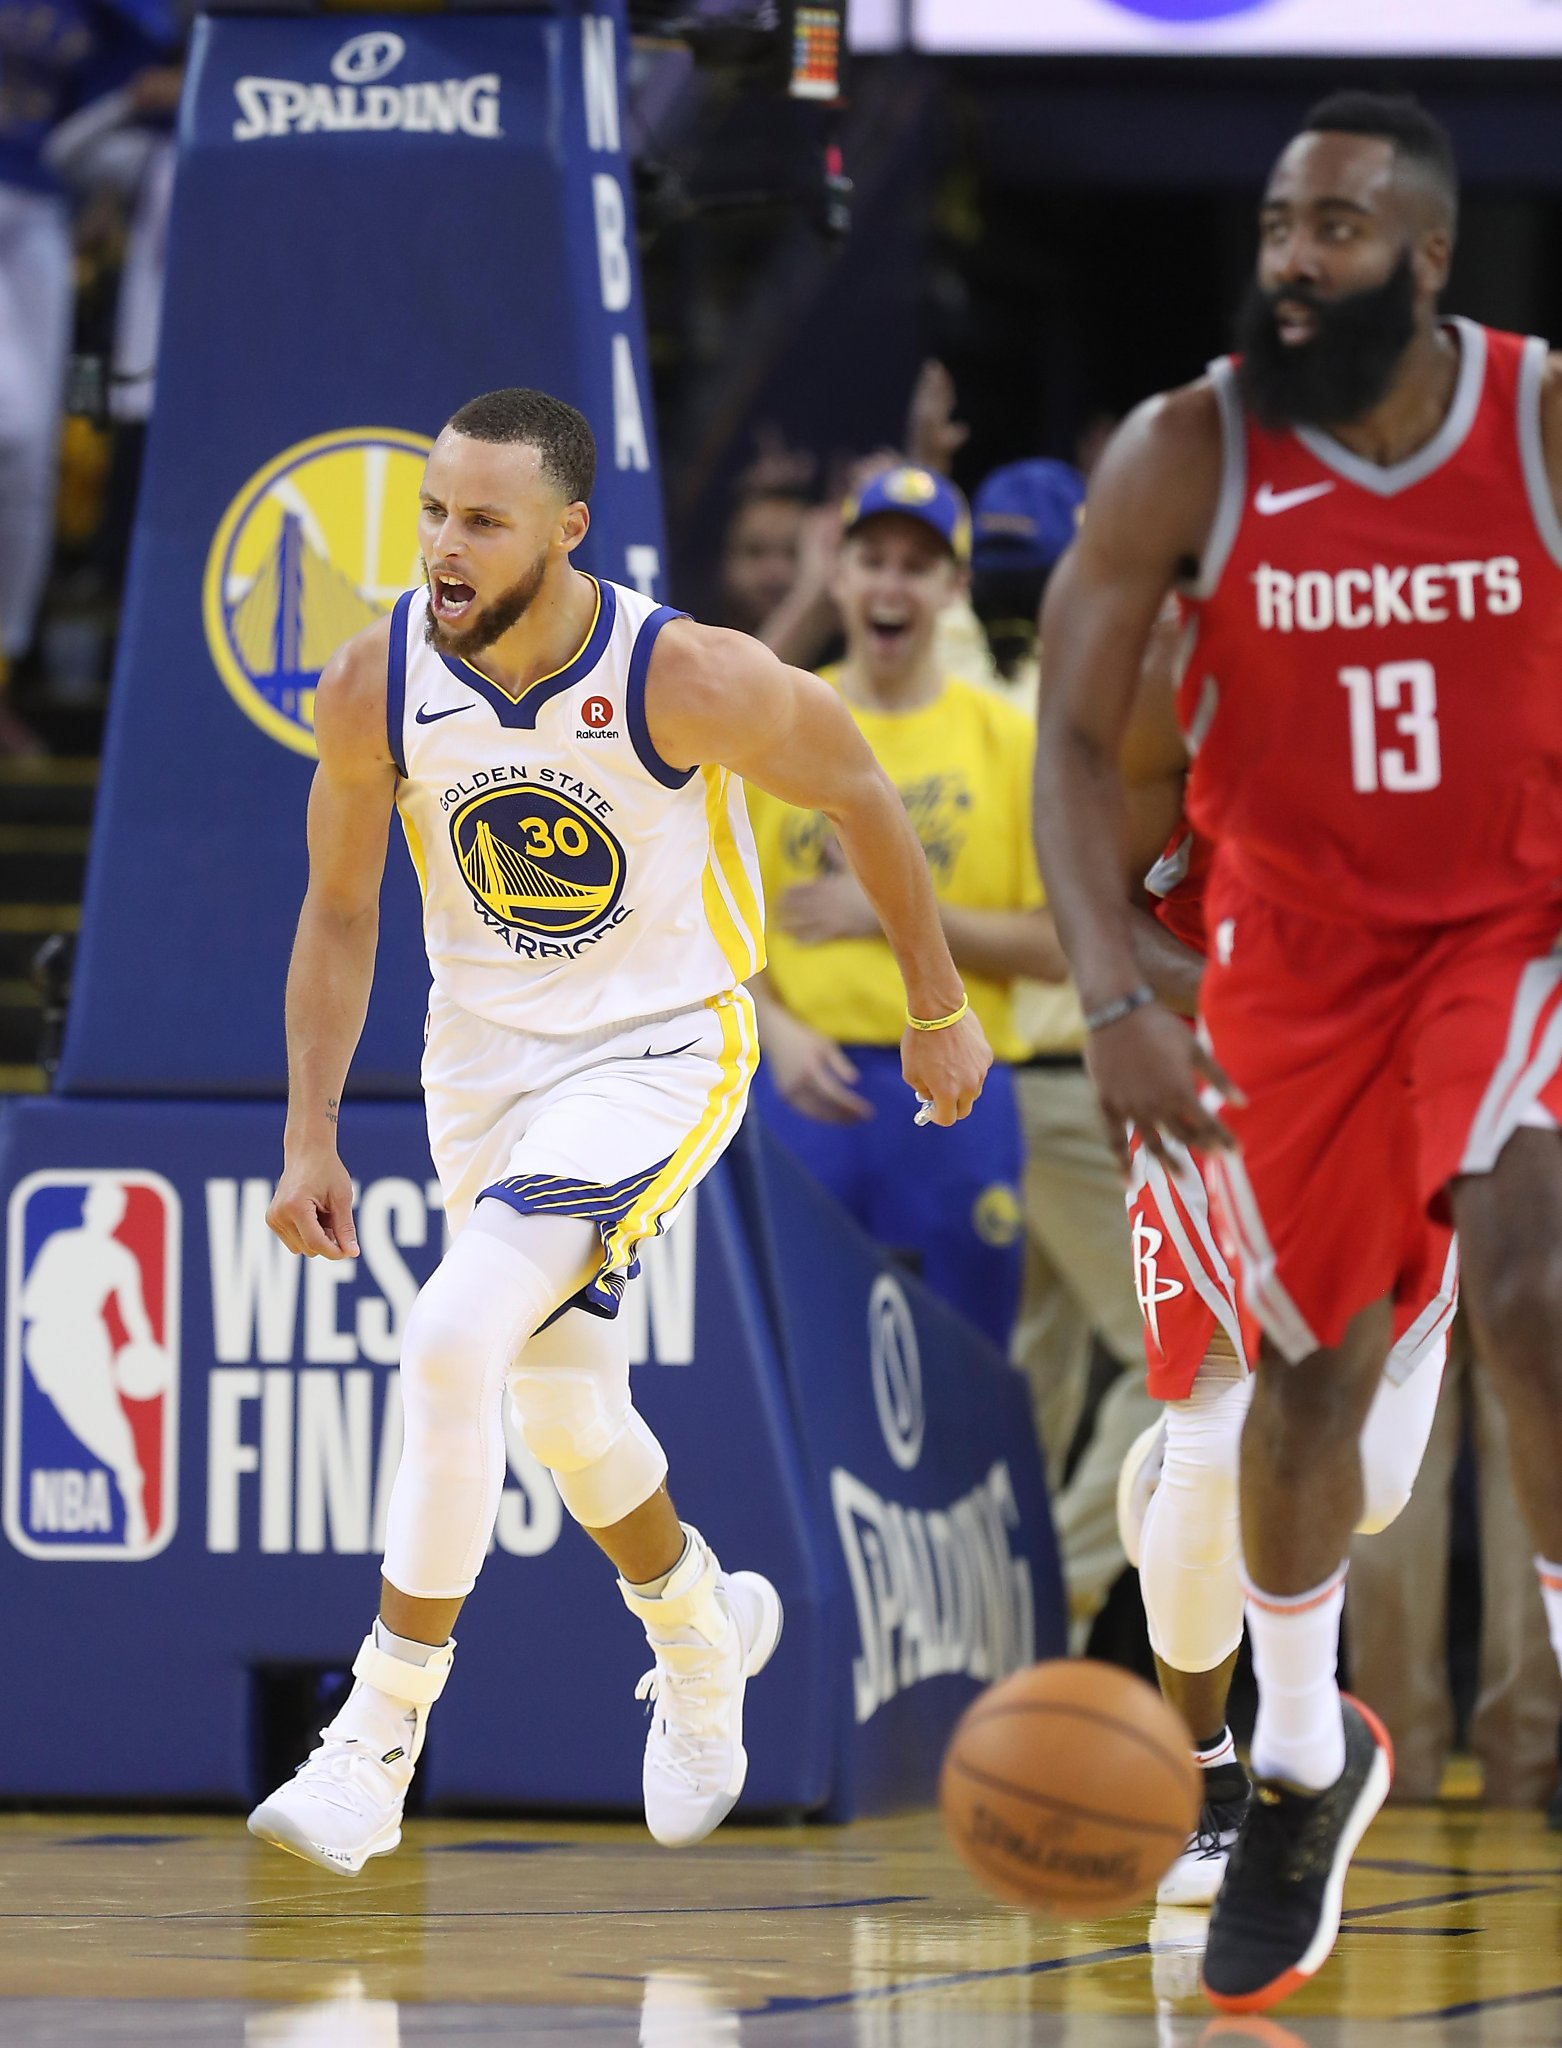 aa5891f4e6f8 Riley Curry was more excited than you about Stephen Curry s return to  dominance in Game 3